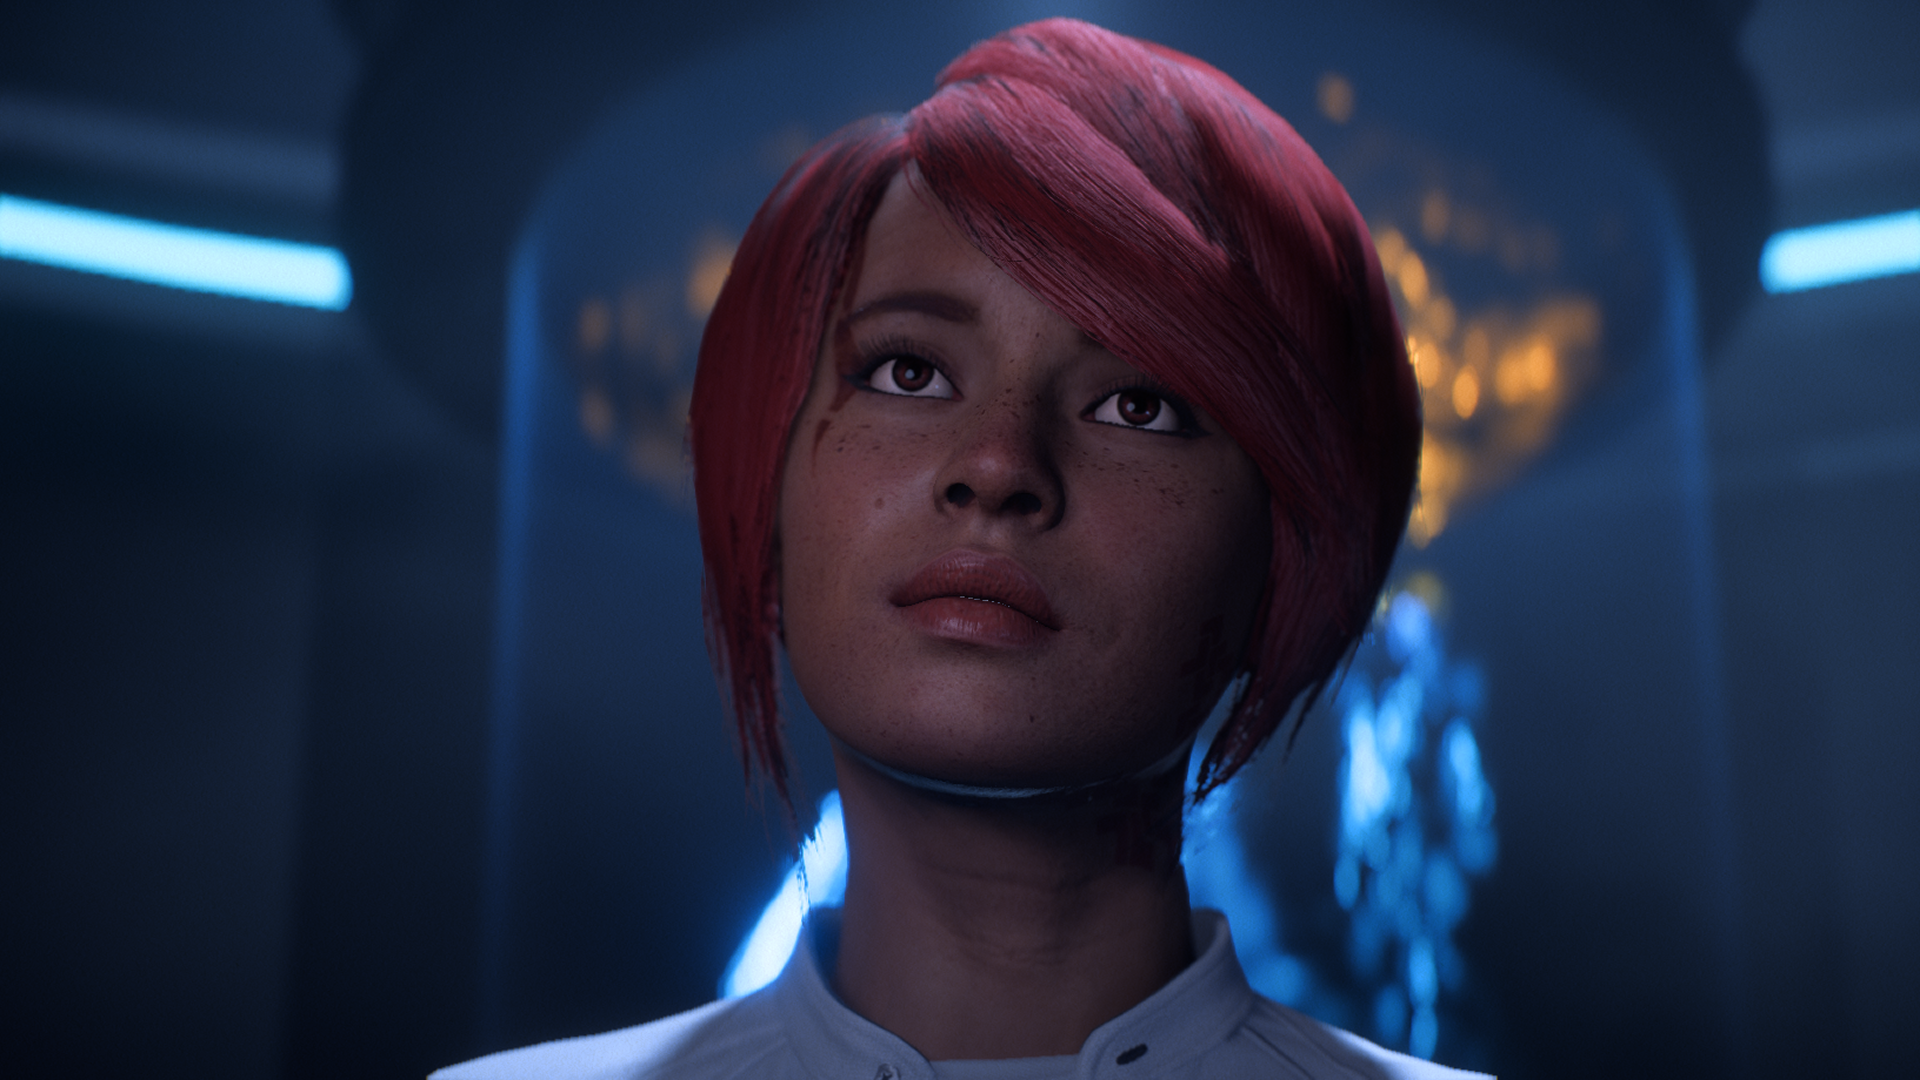 Mass Effect Andromeda Screenshot 2019.03.03 - 16.11.15.56.png - Mass Effect: Andromeda